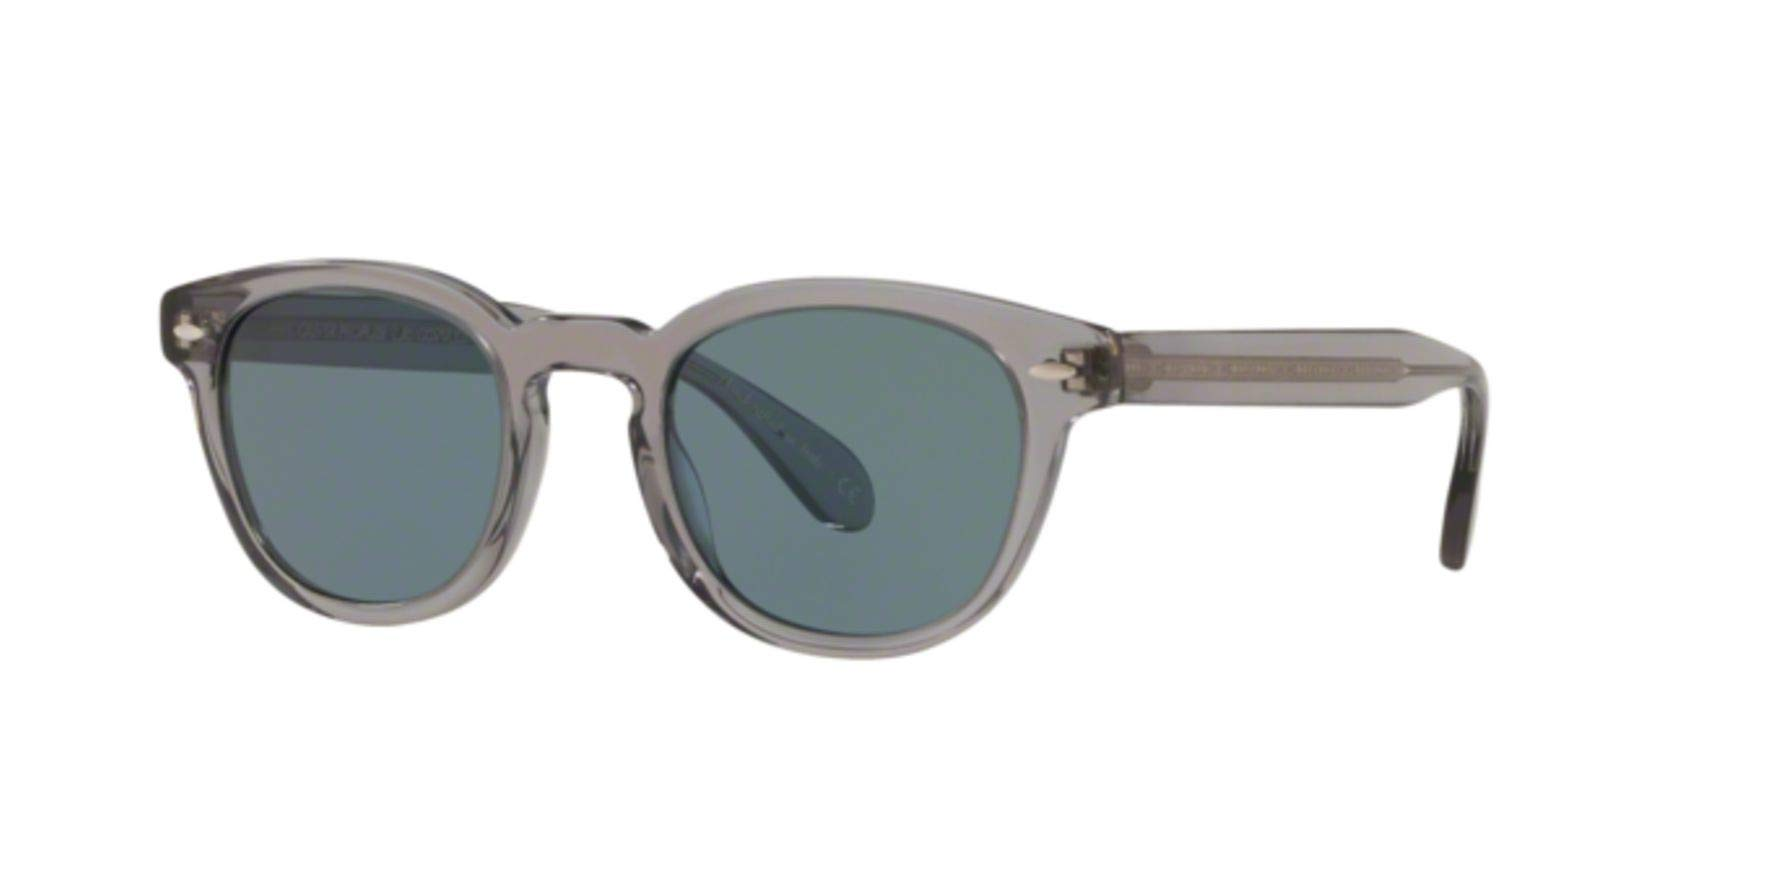 New Oliver Peoples OV 5036S Sheldrake Sun 1132R8 WORKMAN GREY Sunglasses by Oliver Peoples